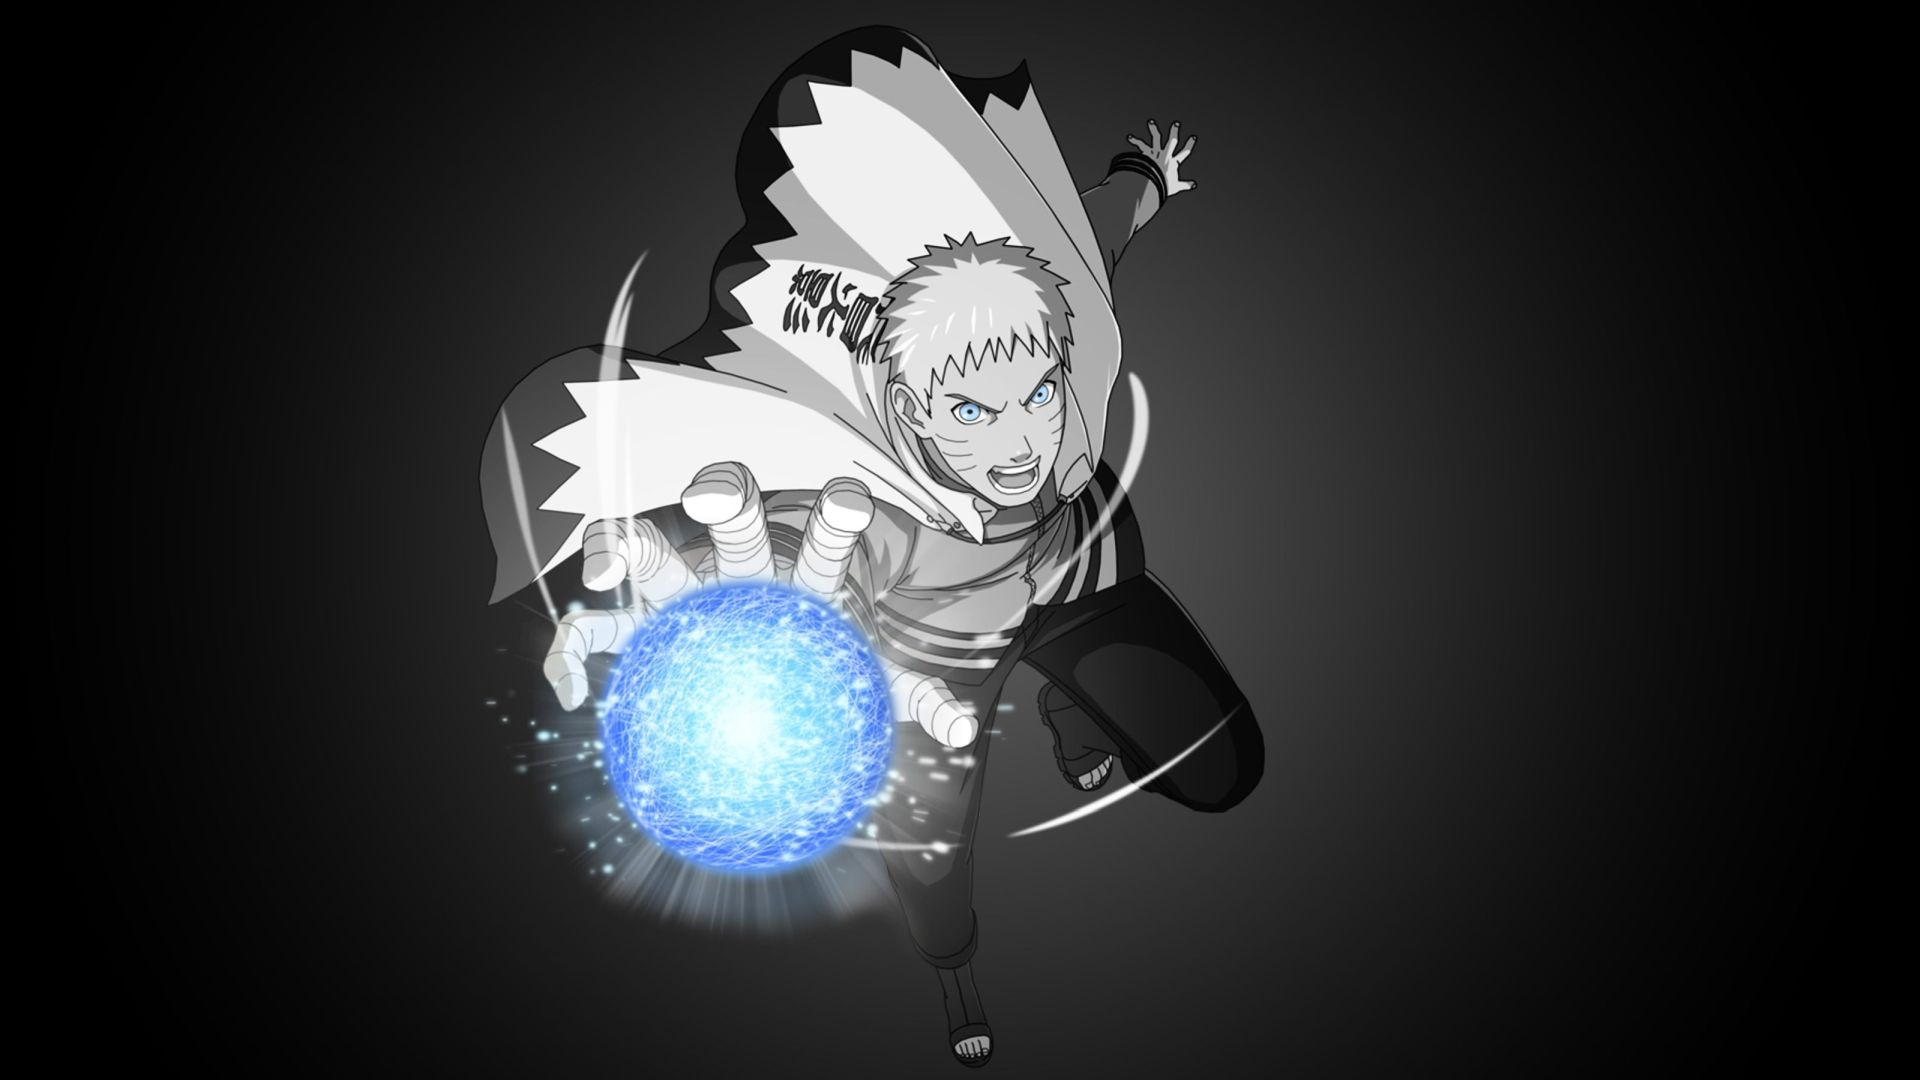 Naruto Desktop, Full HD Wallpaper